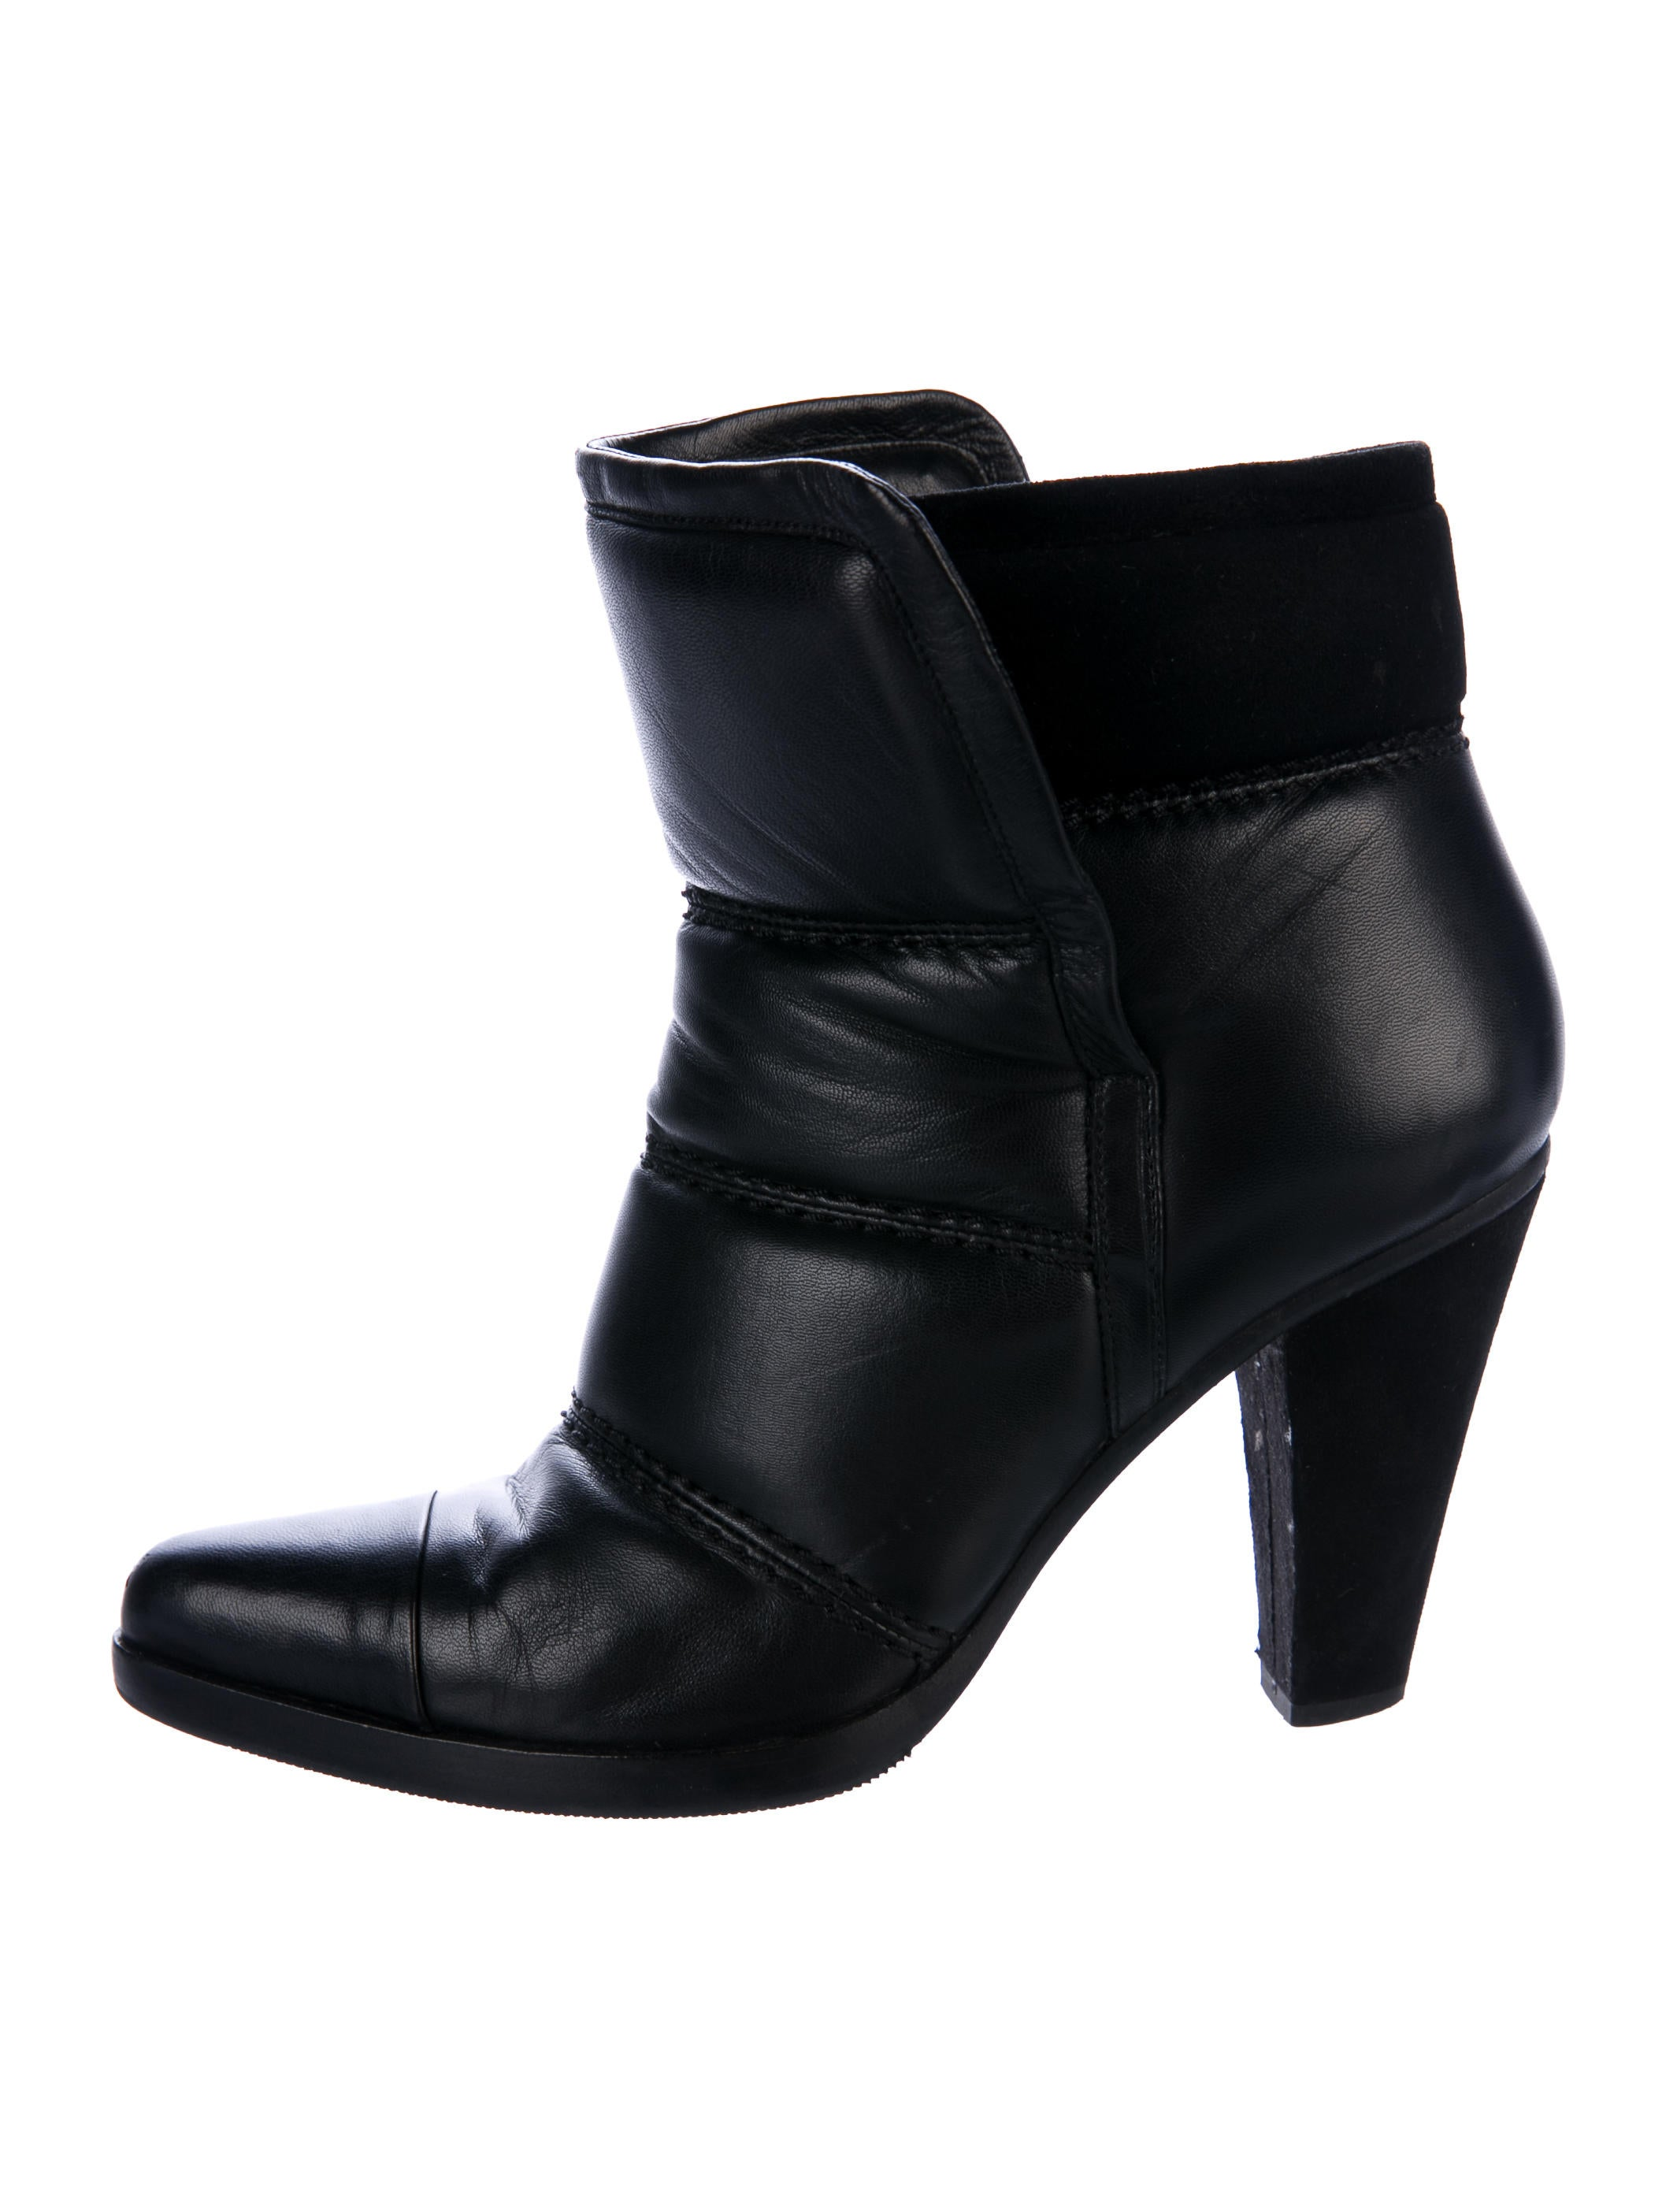 sale professional discount wholesale Chloé Devon Quilted Ankle Boots WCi2KvDpUF